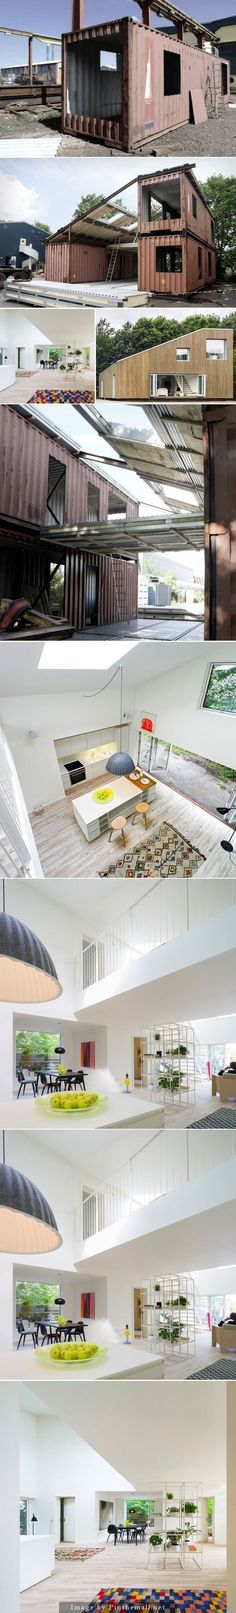 Container House - Upcycled Shipping Container Home - Who Else Wants Simple Step-By-Step Plans To Design And Build A Container Home From Scratch? Building A Container Home, Container Buildings, Container Architecture, Architecture Design, Sustainable Architecture, Architecture Awards, Contemporary Architecture, Container Design, Container Pool